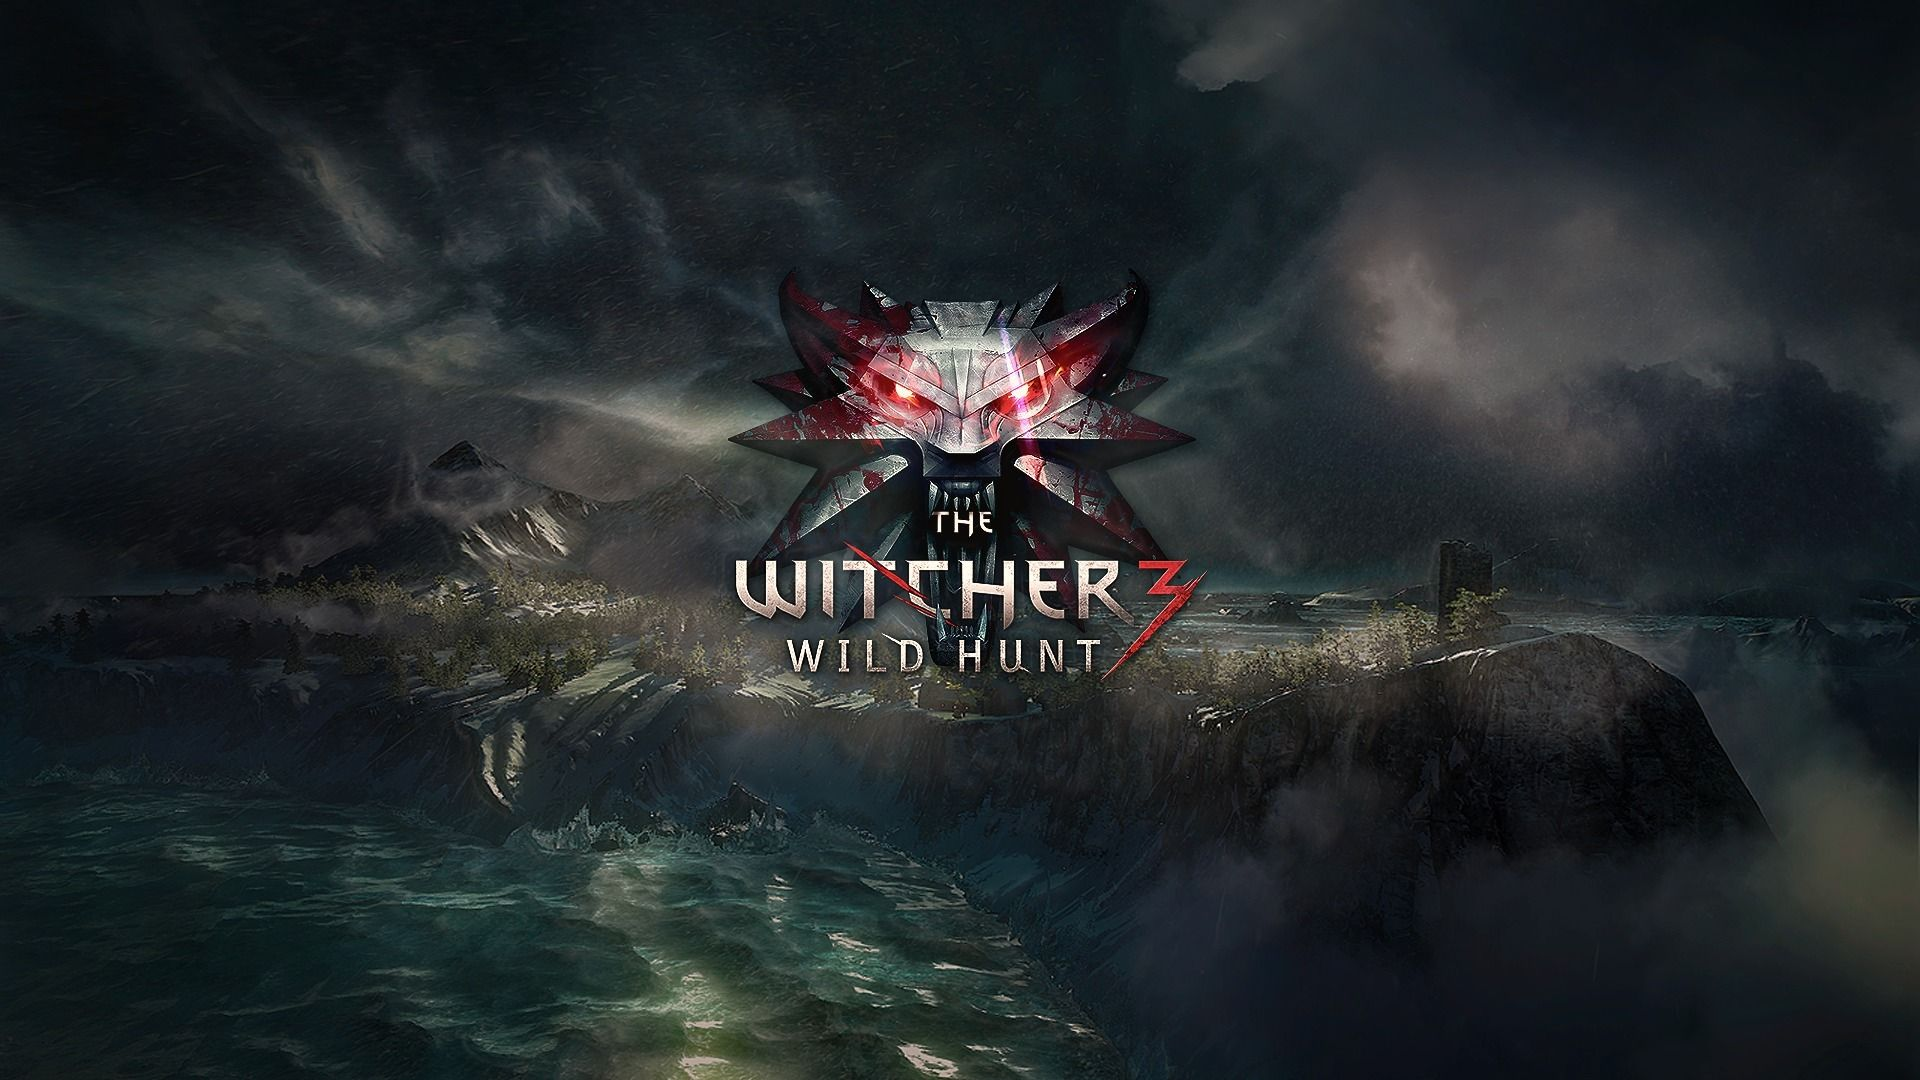 the witcher 3 wallpaper Google Search (With images